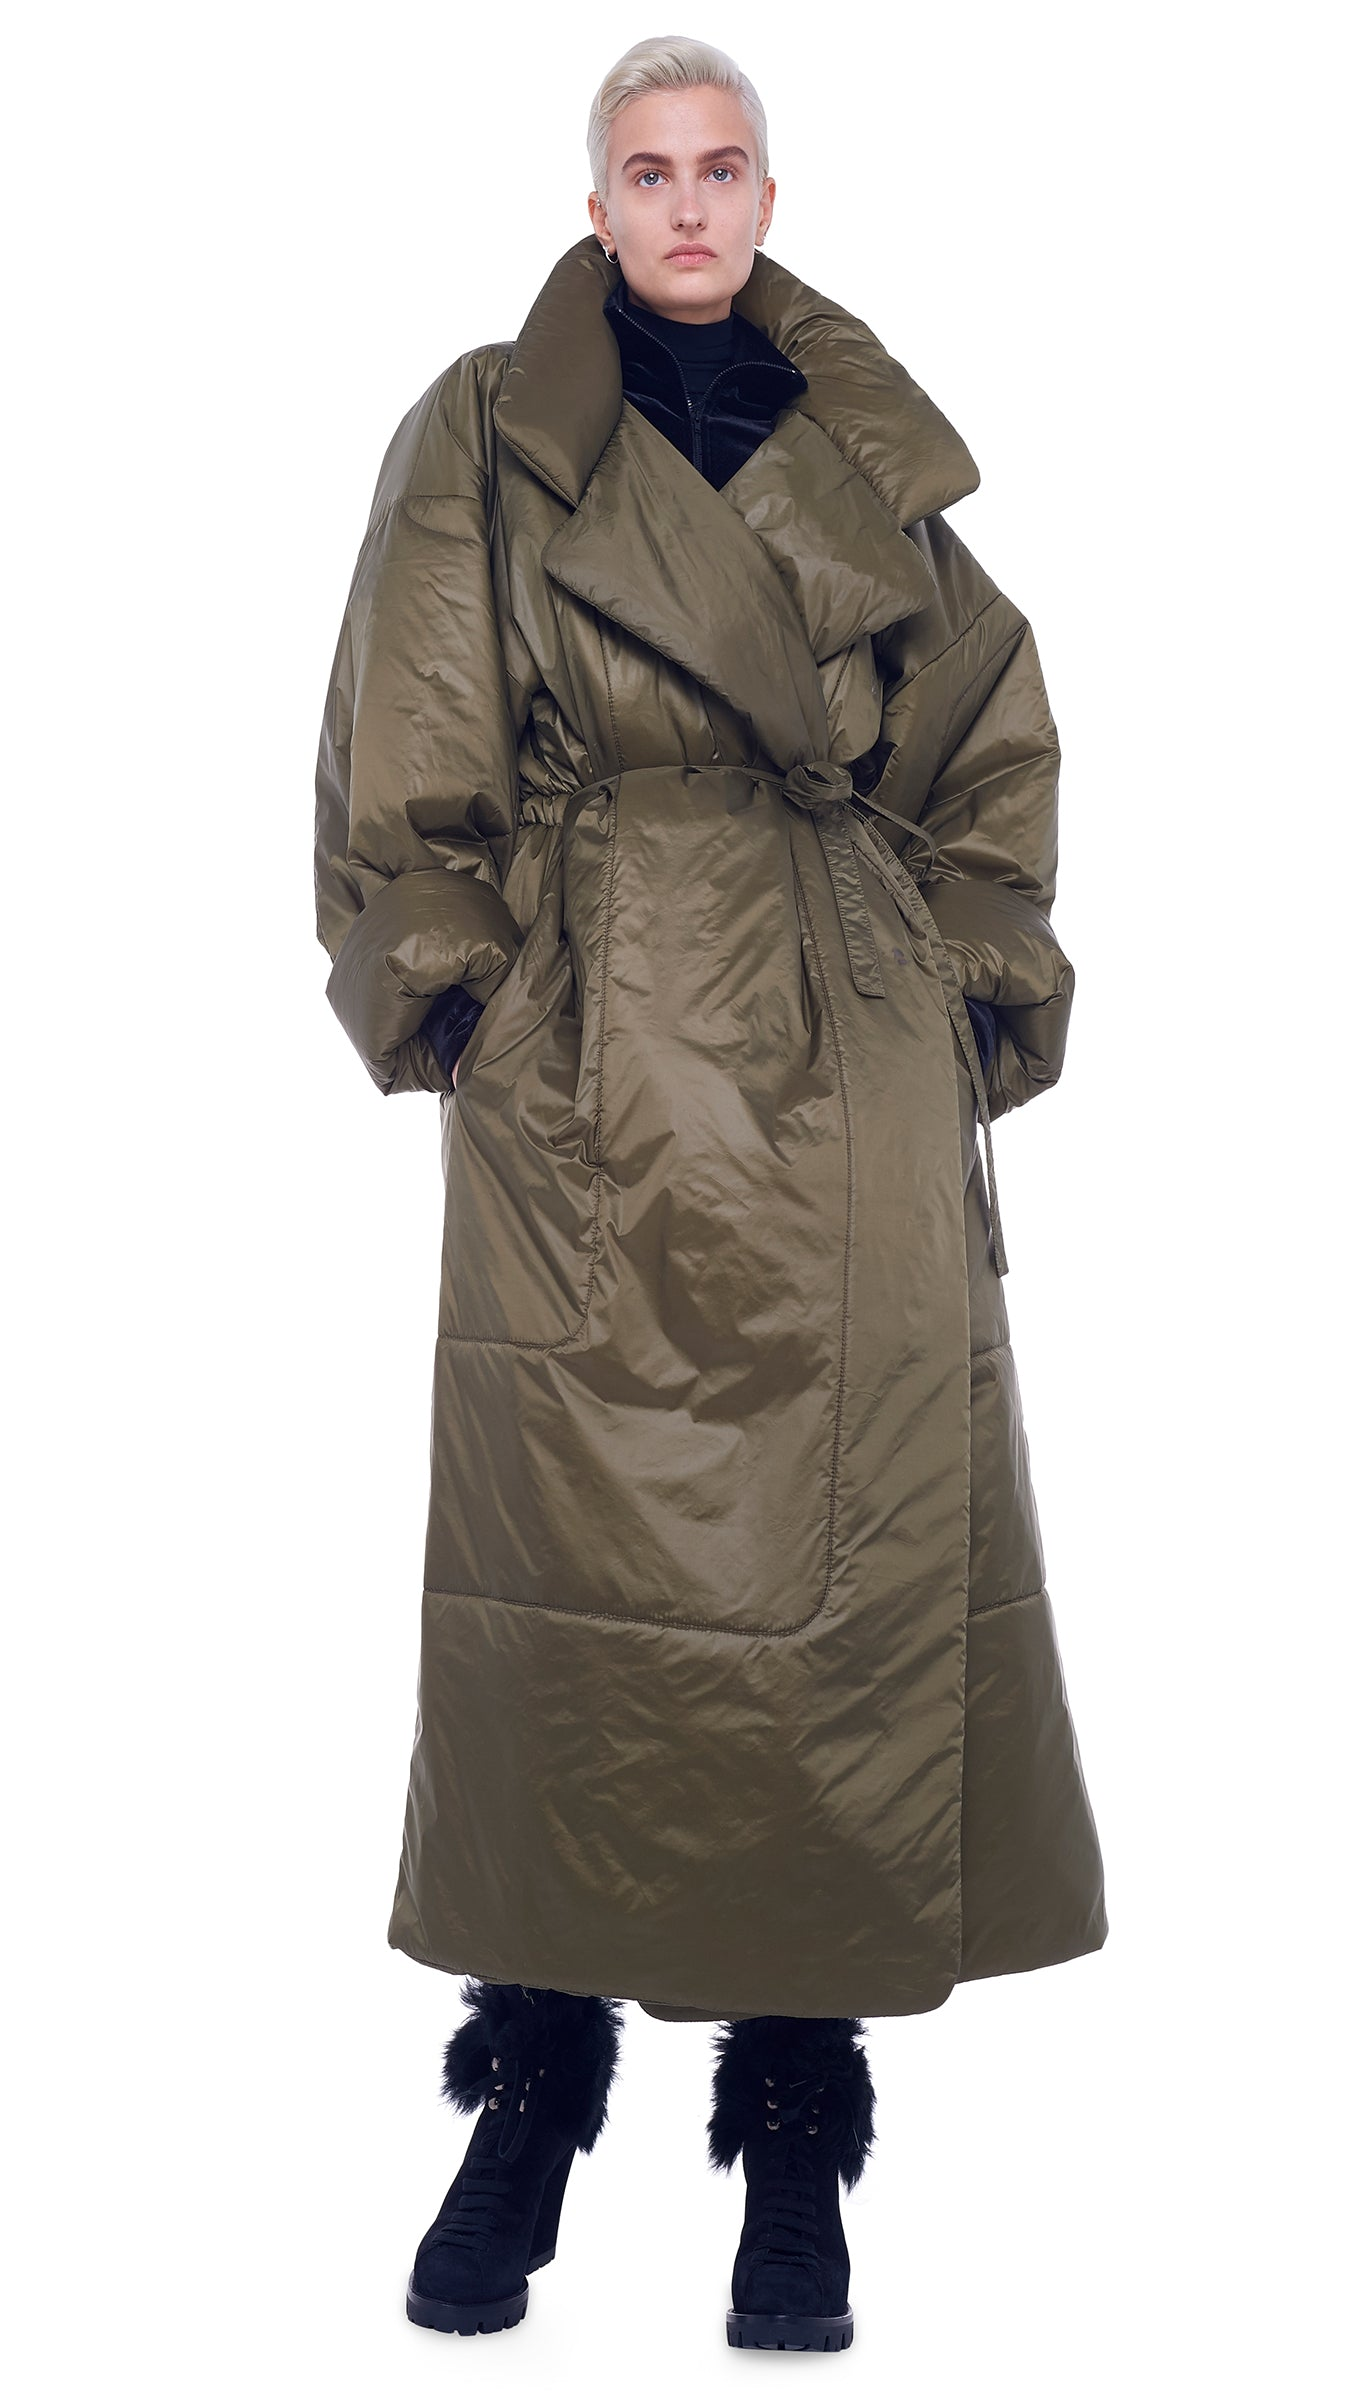 OVERSIZED BOYFRIEND SLEEPING BAG COAT - 1